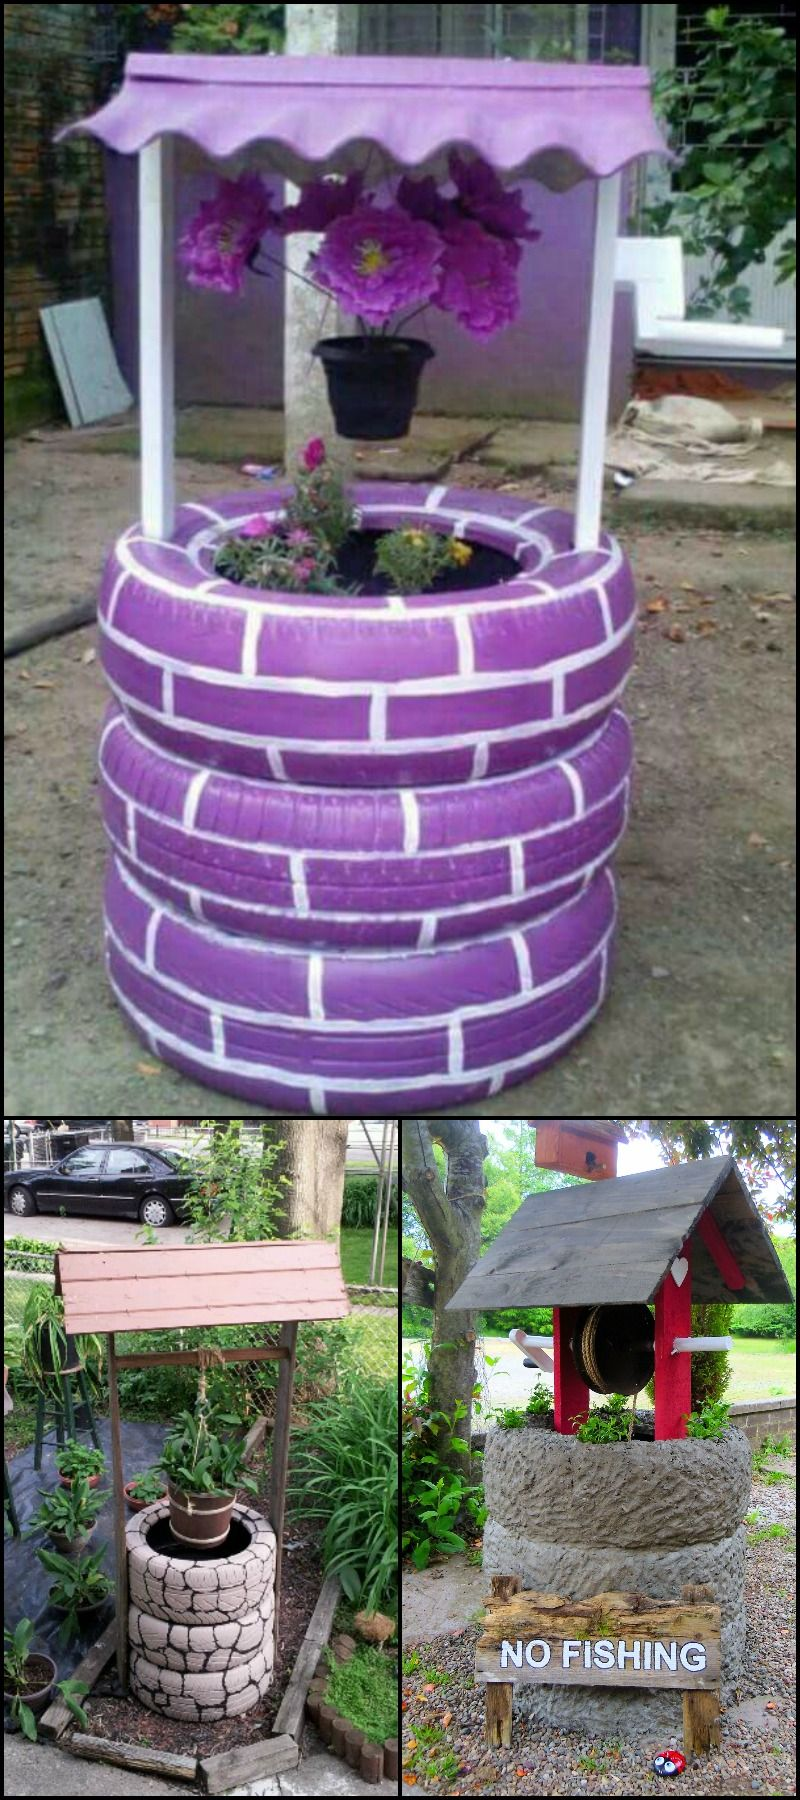 Yard Decorations Made From Tires